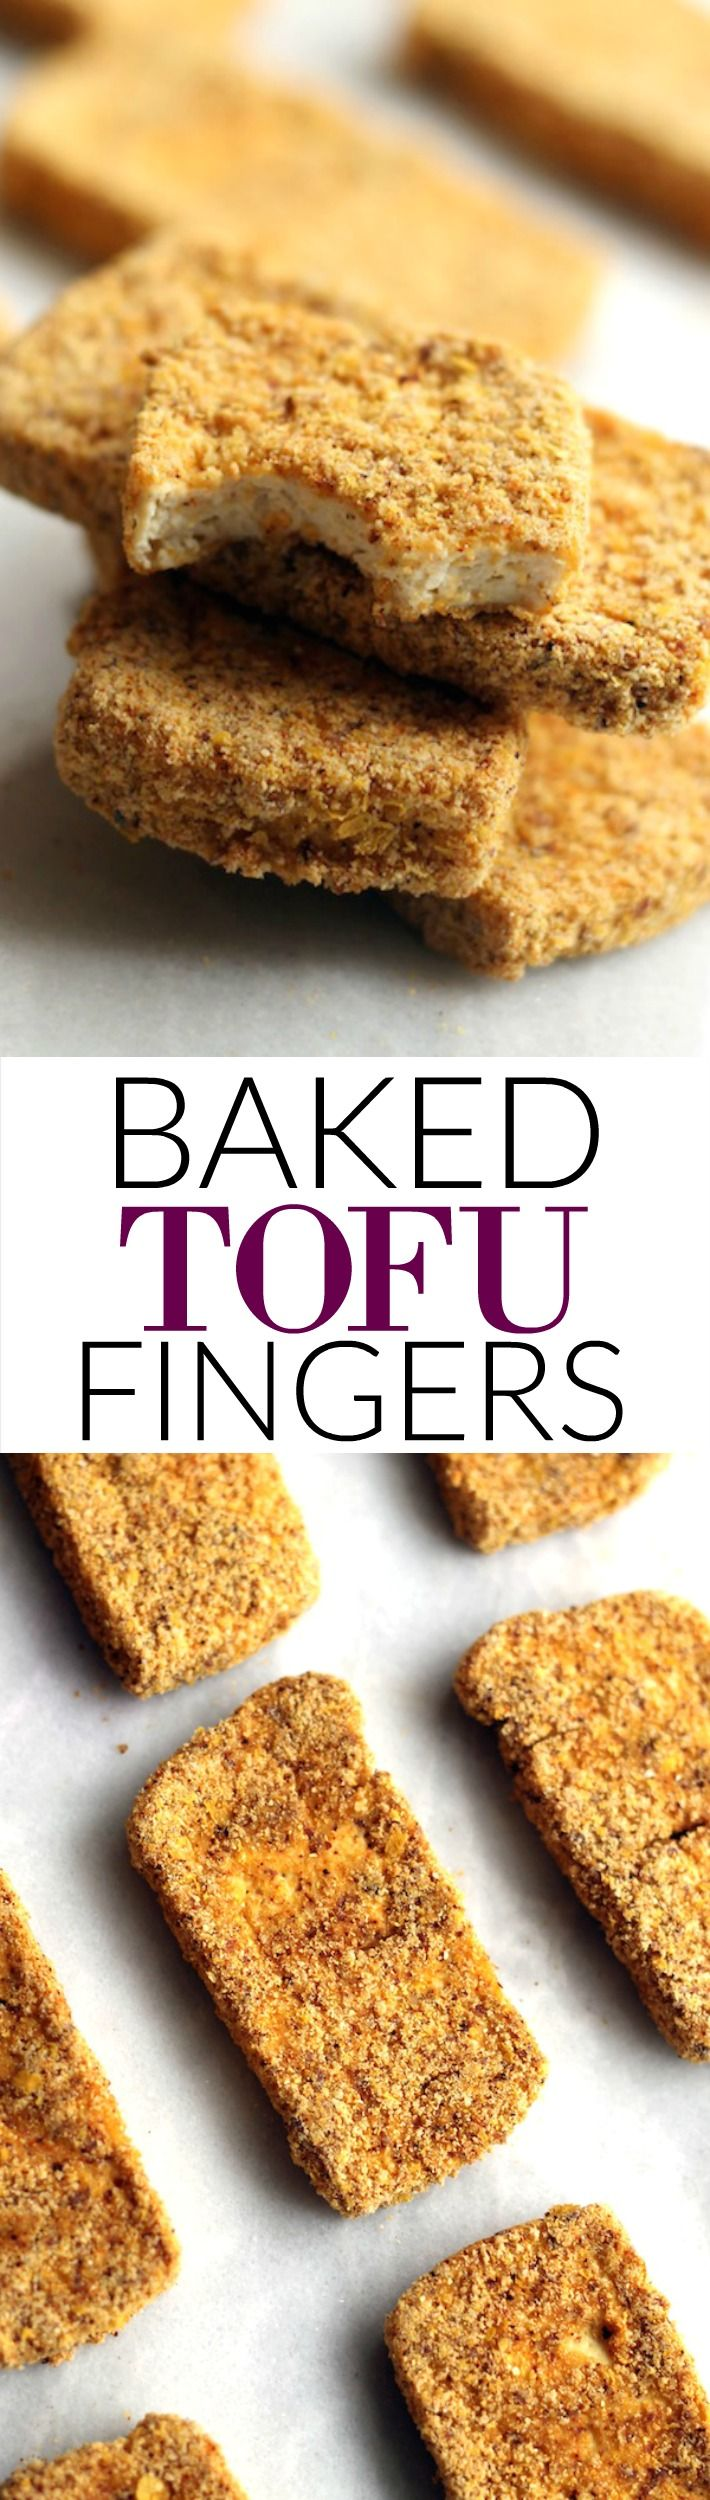 This Crispy Baked Tofu Fingers have an addictive texture and flavor that the whole family will love! They're simple to make, packed with protein, and tasty to boot. Vegan and easily gluten-free!